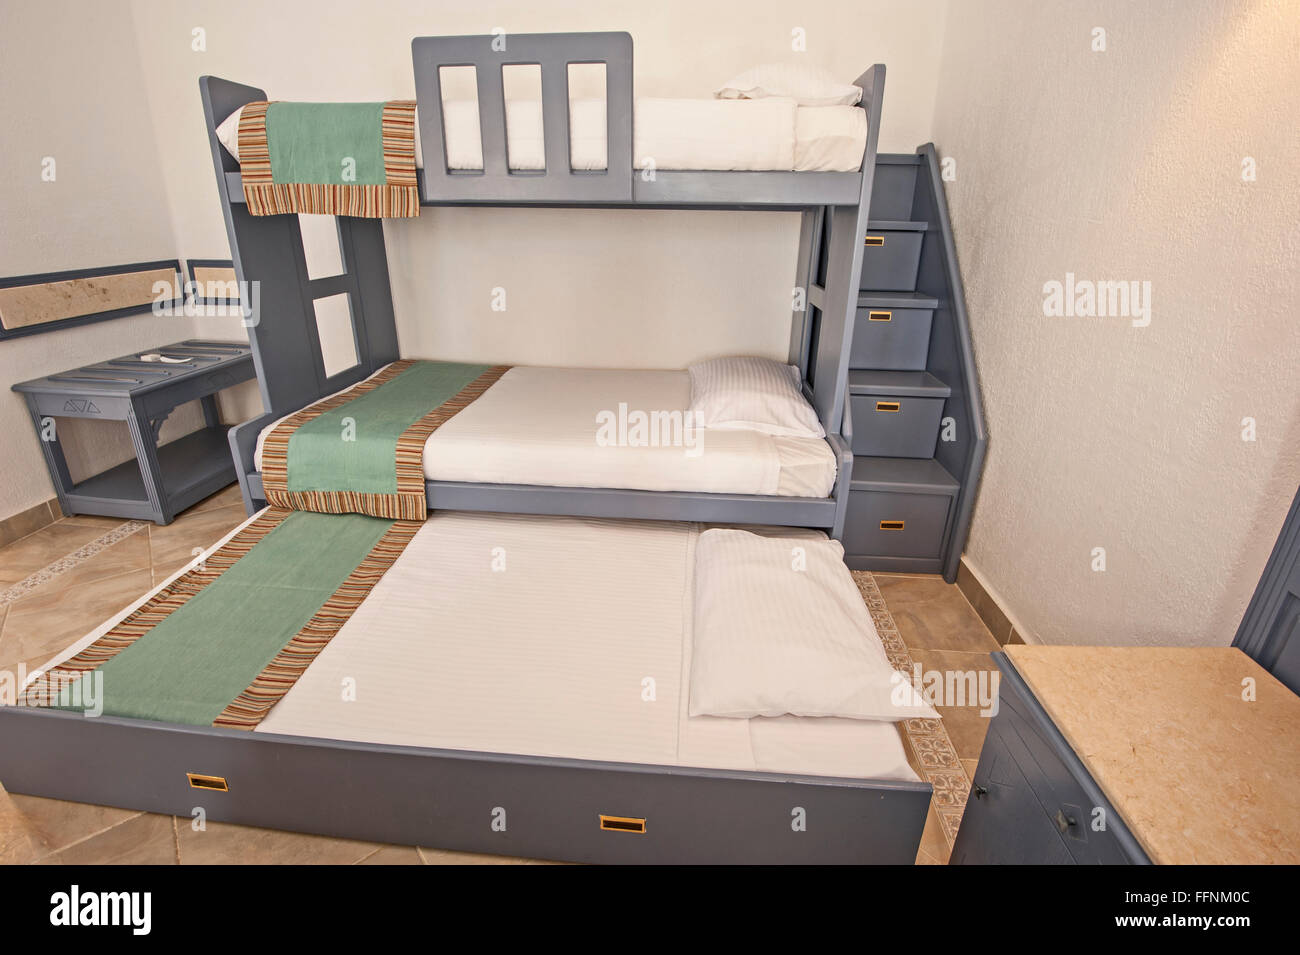 Space Saving Bunk Beds In Family Bedroom Storage Concept Idea With